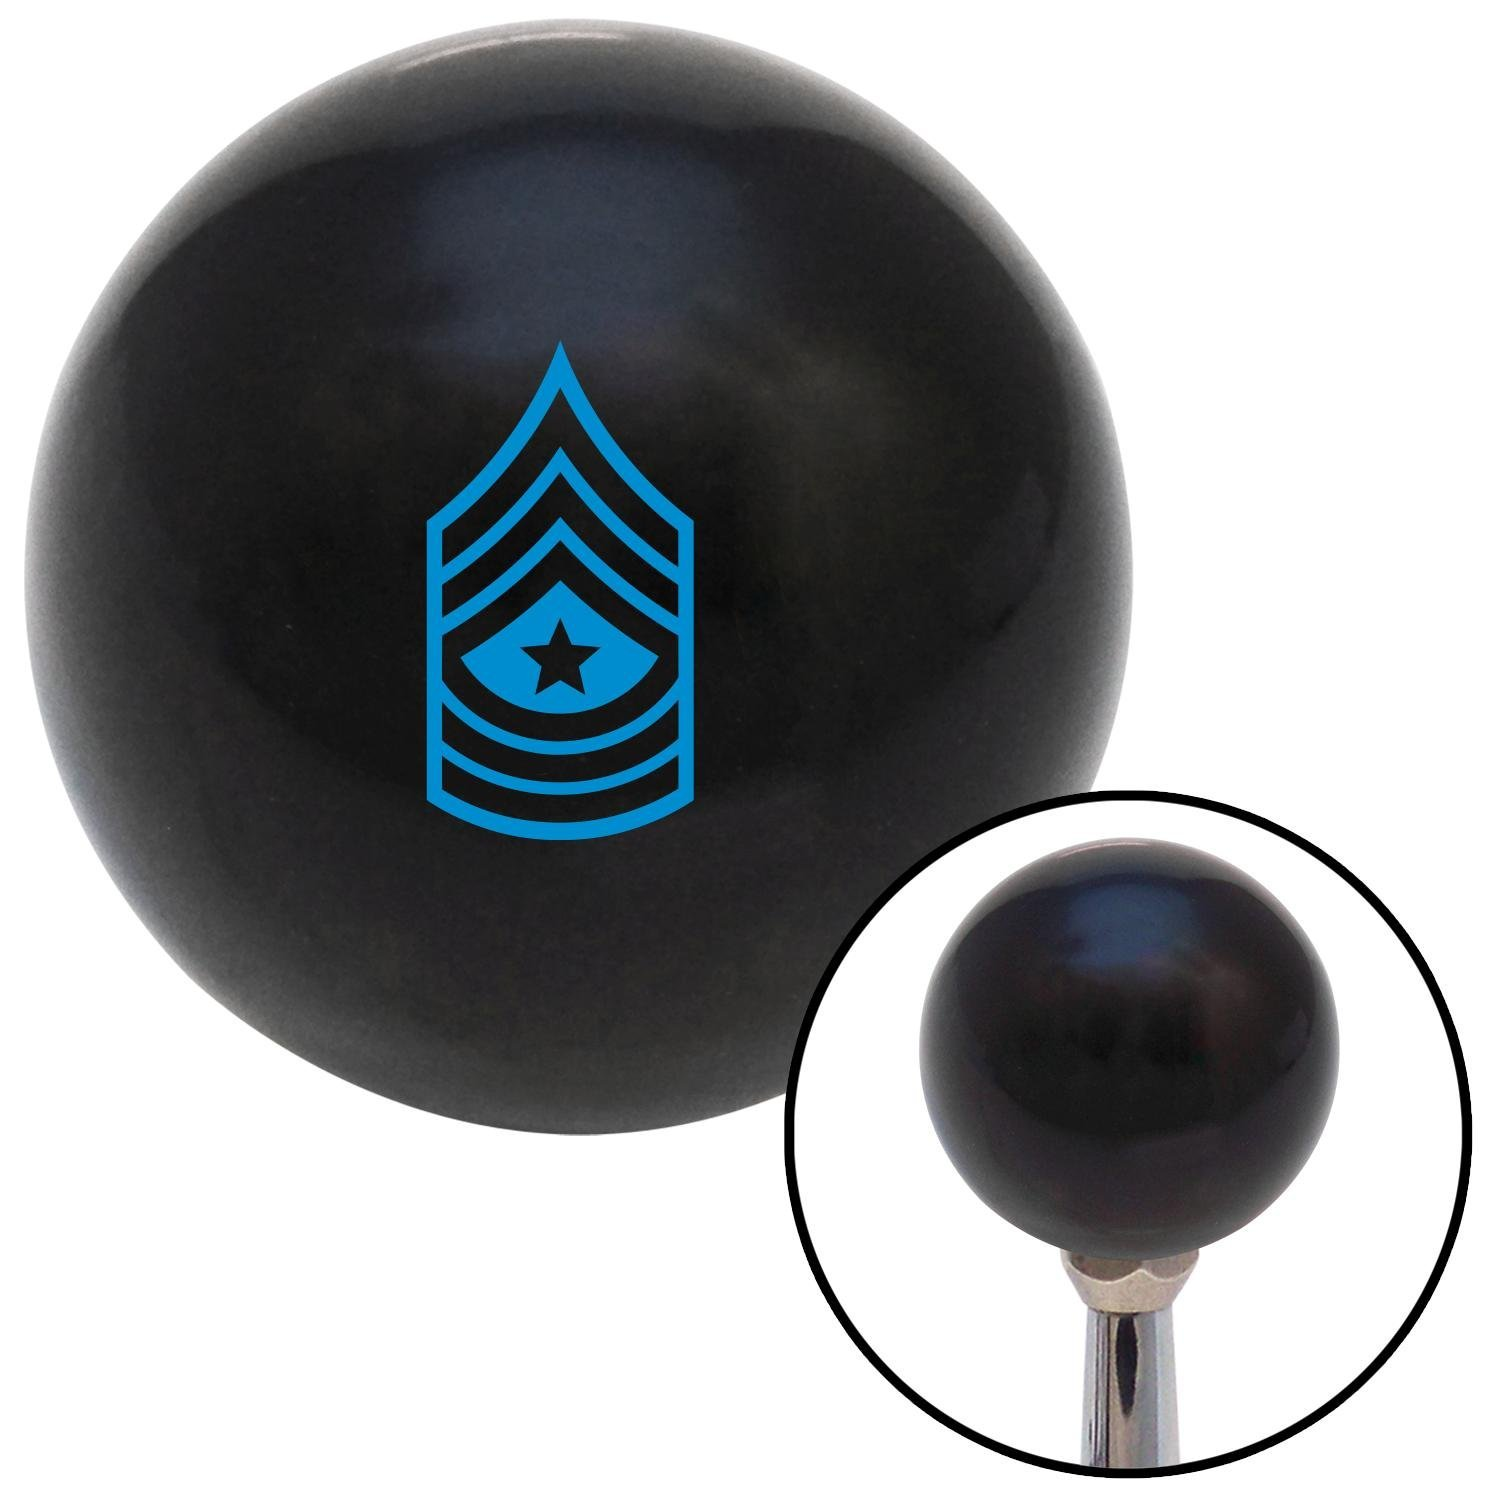 American Shifter 106650 Black Shift Knob with M16 x 1.5 Insert Blue Sergeant Major